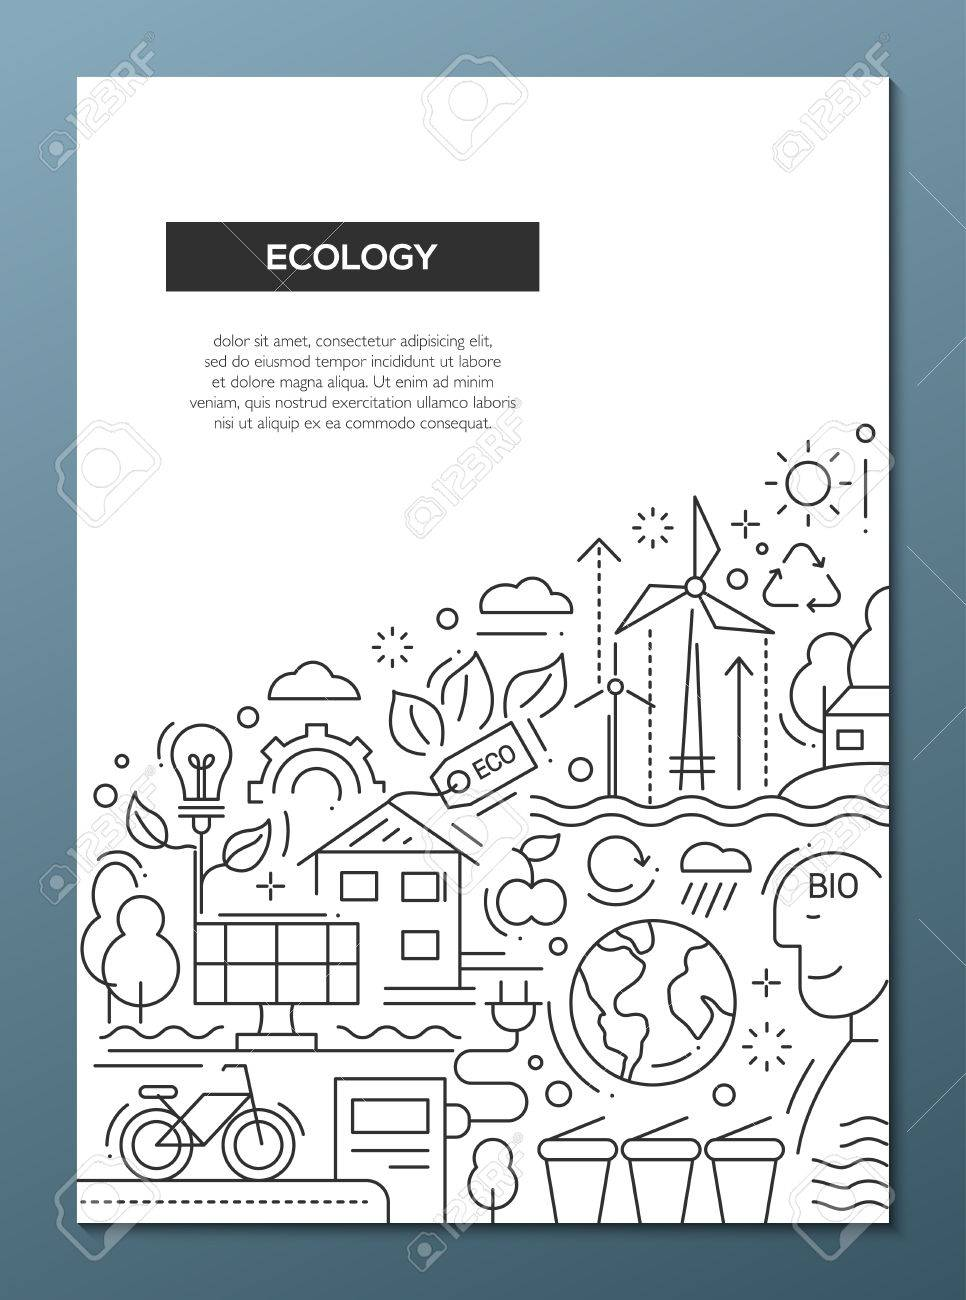 ecology vector line design brochure poster flyer presentation template a4 size layout